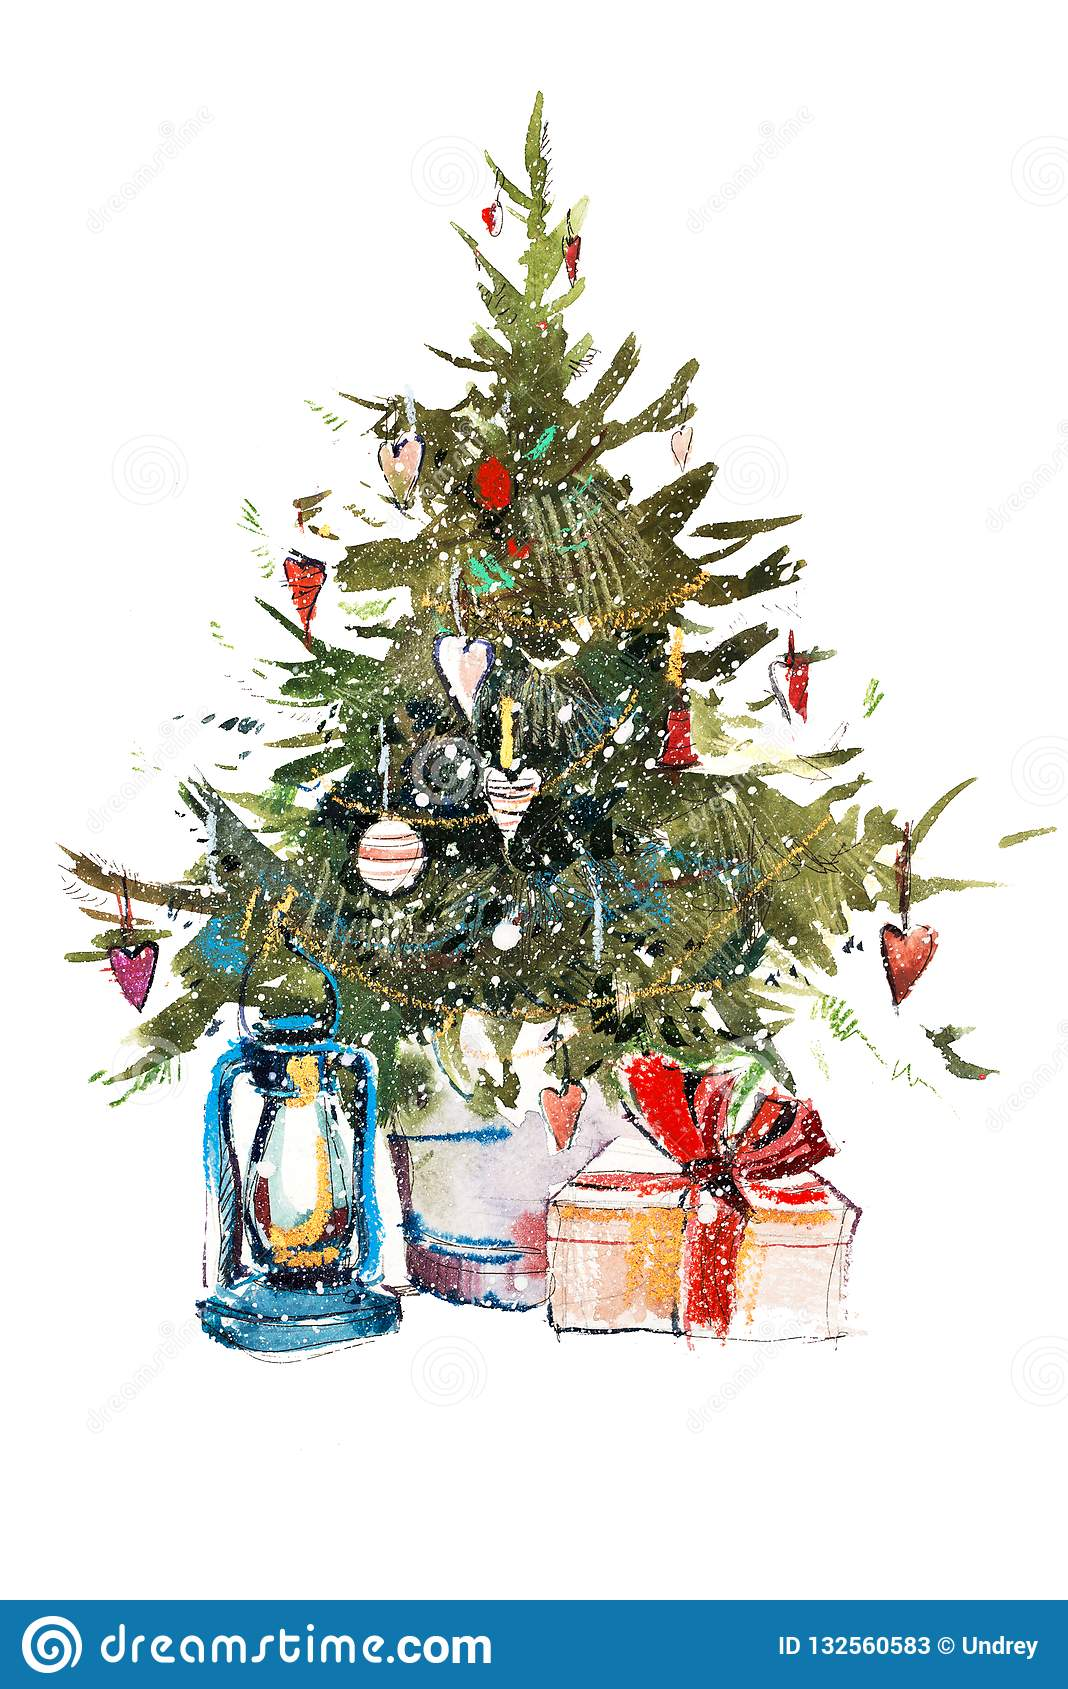 Color Christmas Pictures To Draw.Decorated Christmas Tree New Year Watercolor Illustration